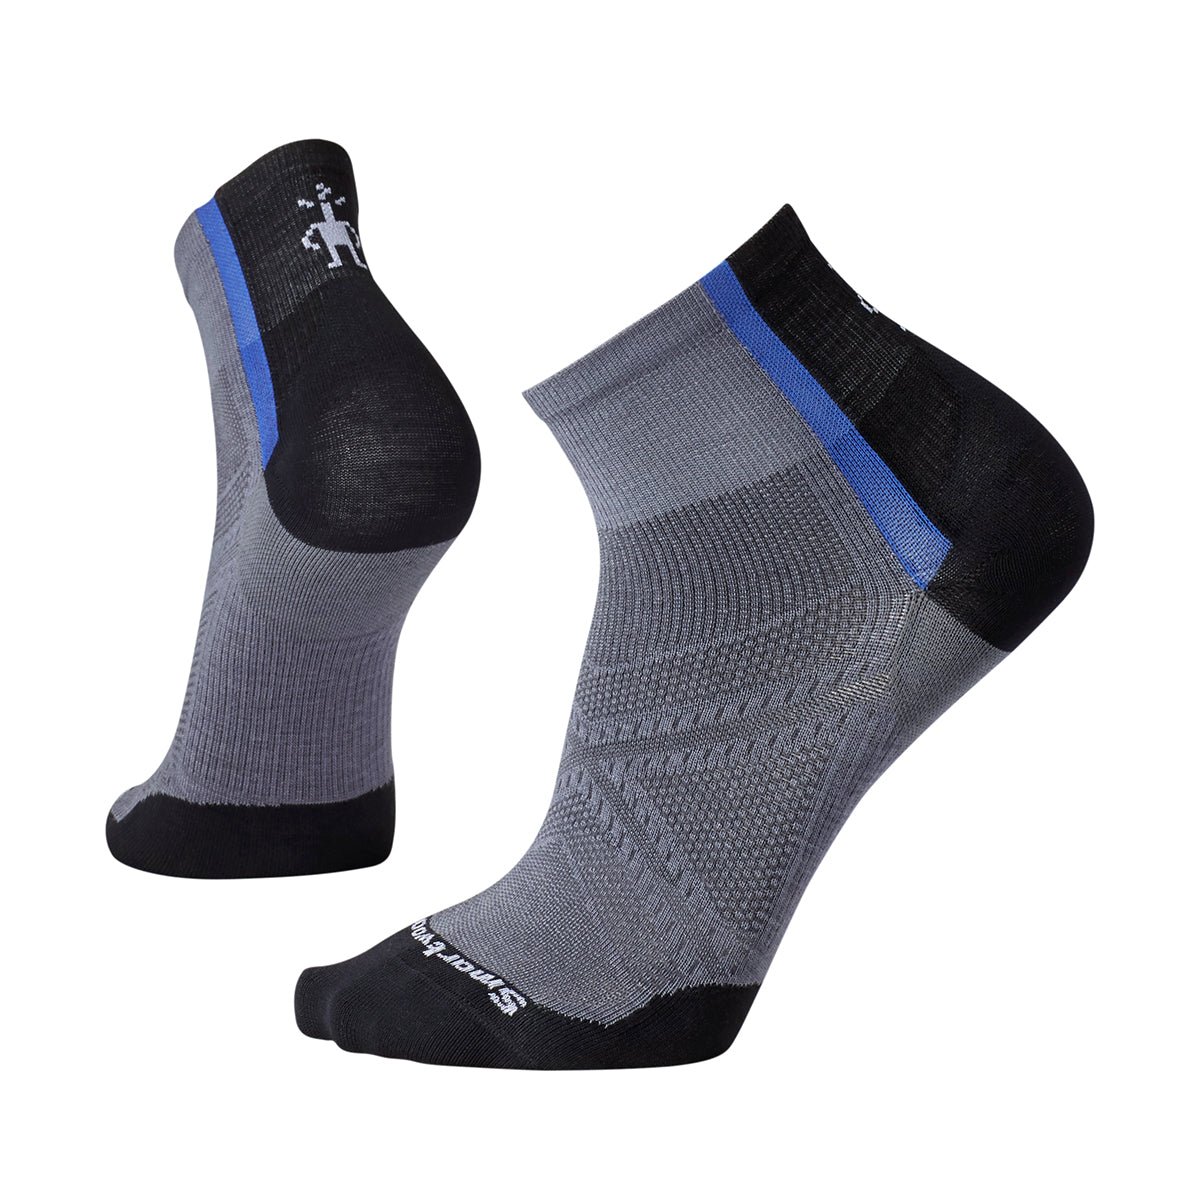 b01e5998d25 Men s PhD® Cycle Ultra Light Mini Socks - Graphite – Gazelle Sports